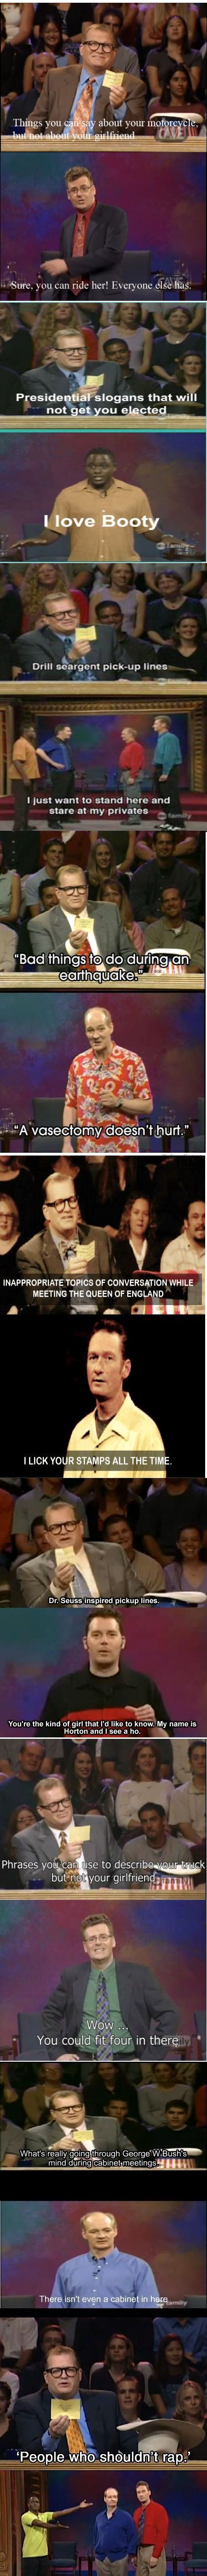 """""""Whose Line Is It Anyway?"""" Funny Compilation Wish Drew Carey would host again! The last one is my favorite."""